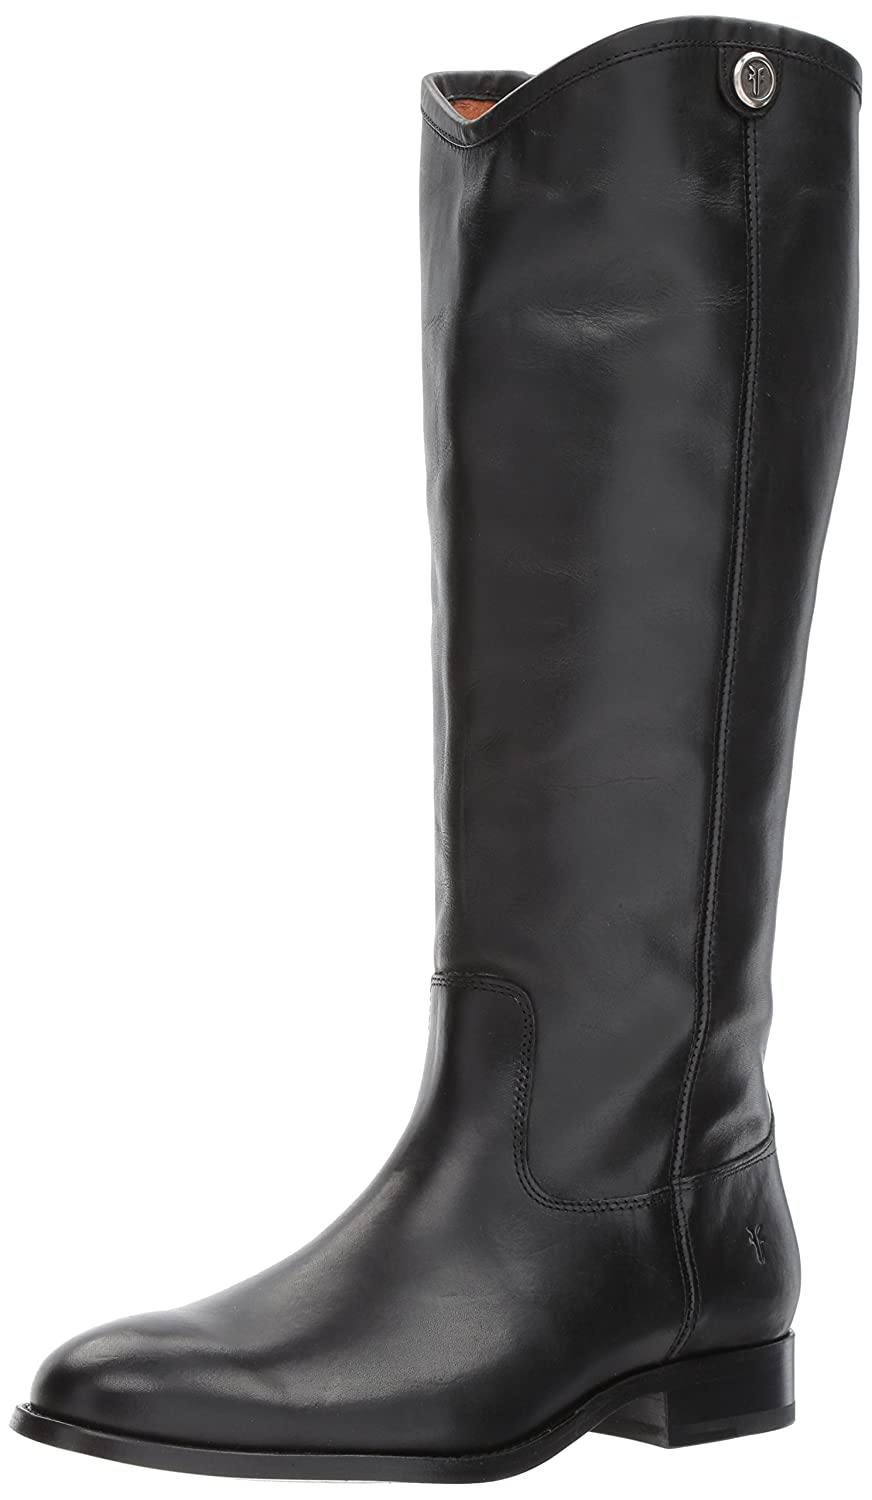 Frye Melissa Button 2 Tall Wide Calf Riding Boots Mehq6U